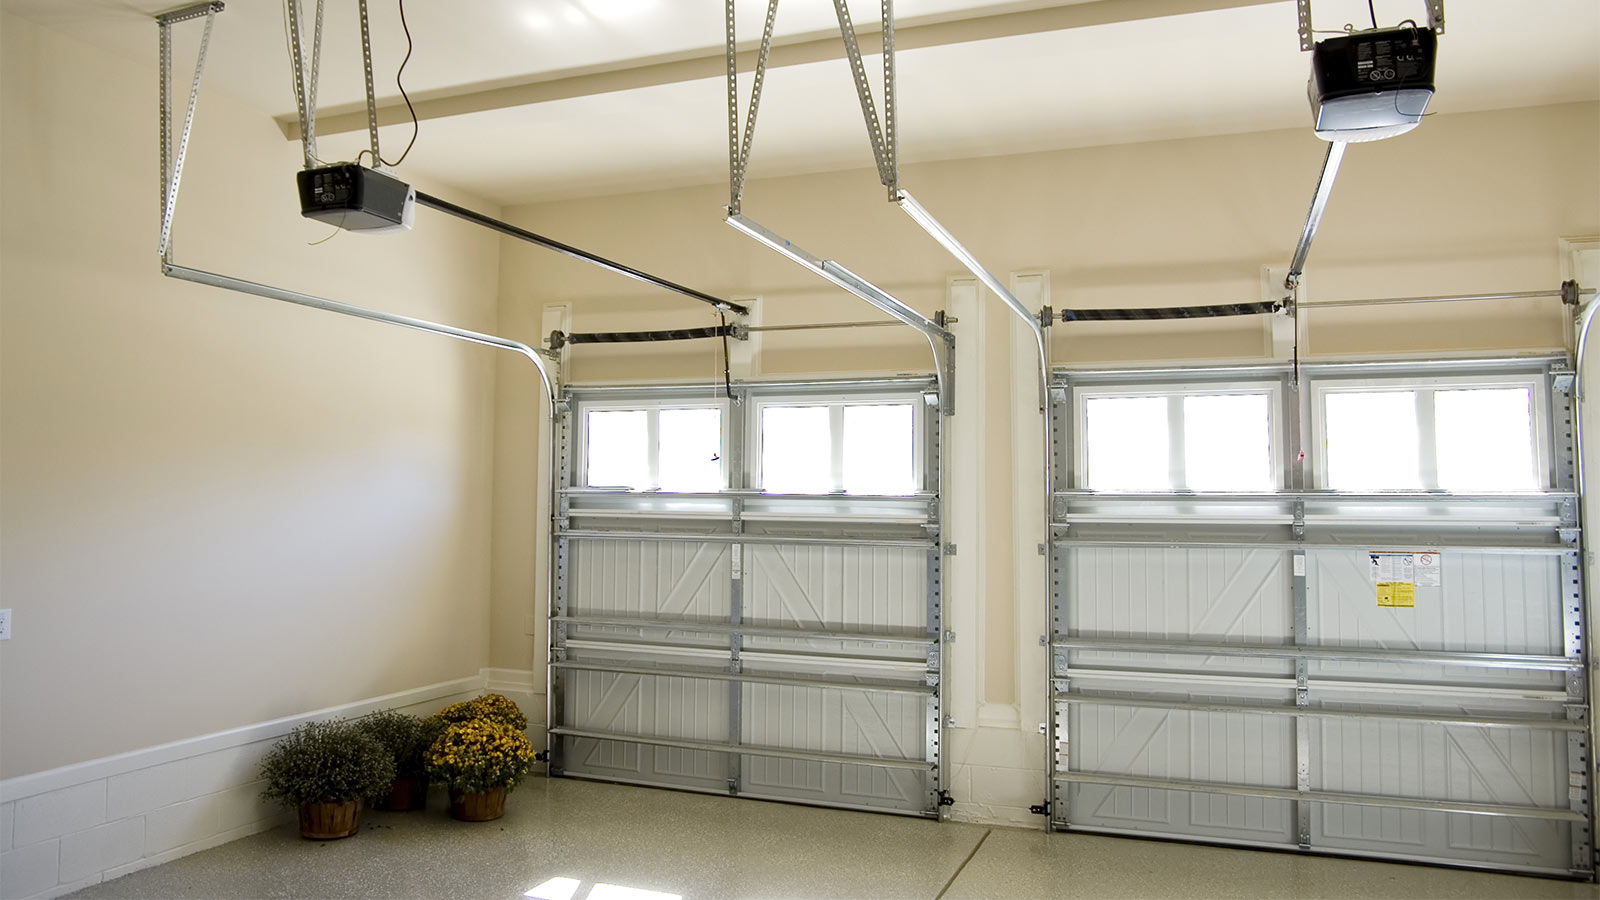 Sectional Garage Doors from Steel Security Doors Berkshire suppliers.